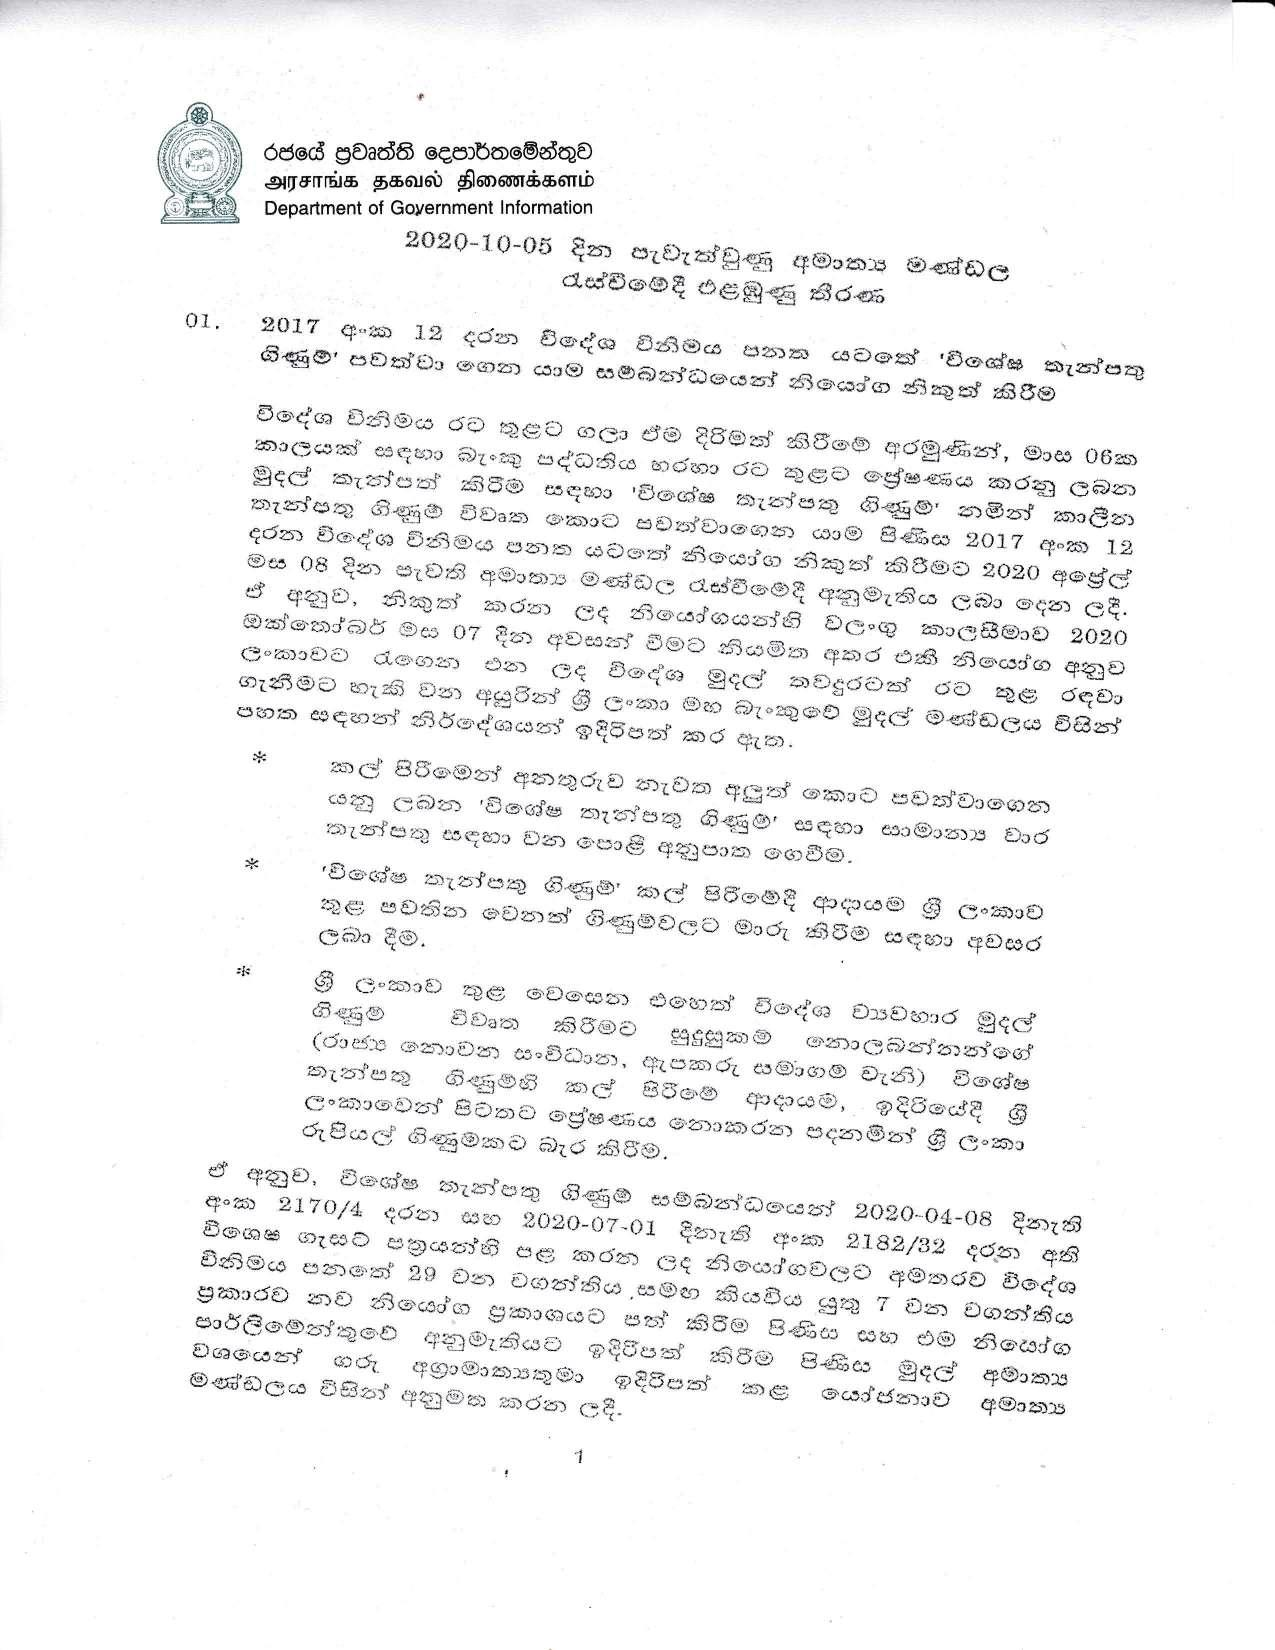 Cabinet Decision on 05.10.2020 compressed page 001